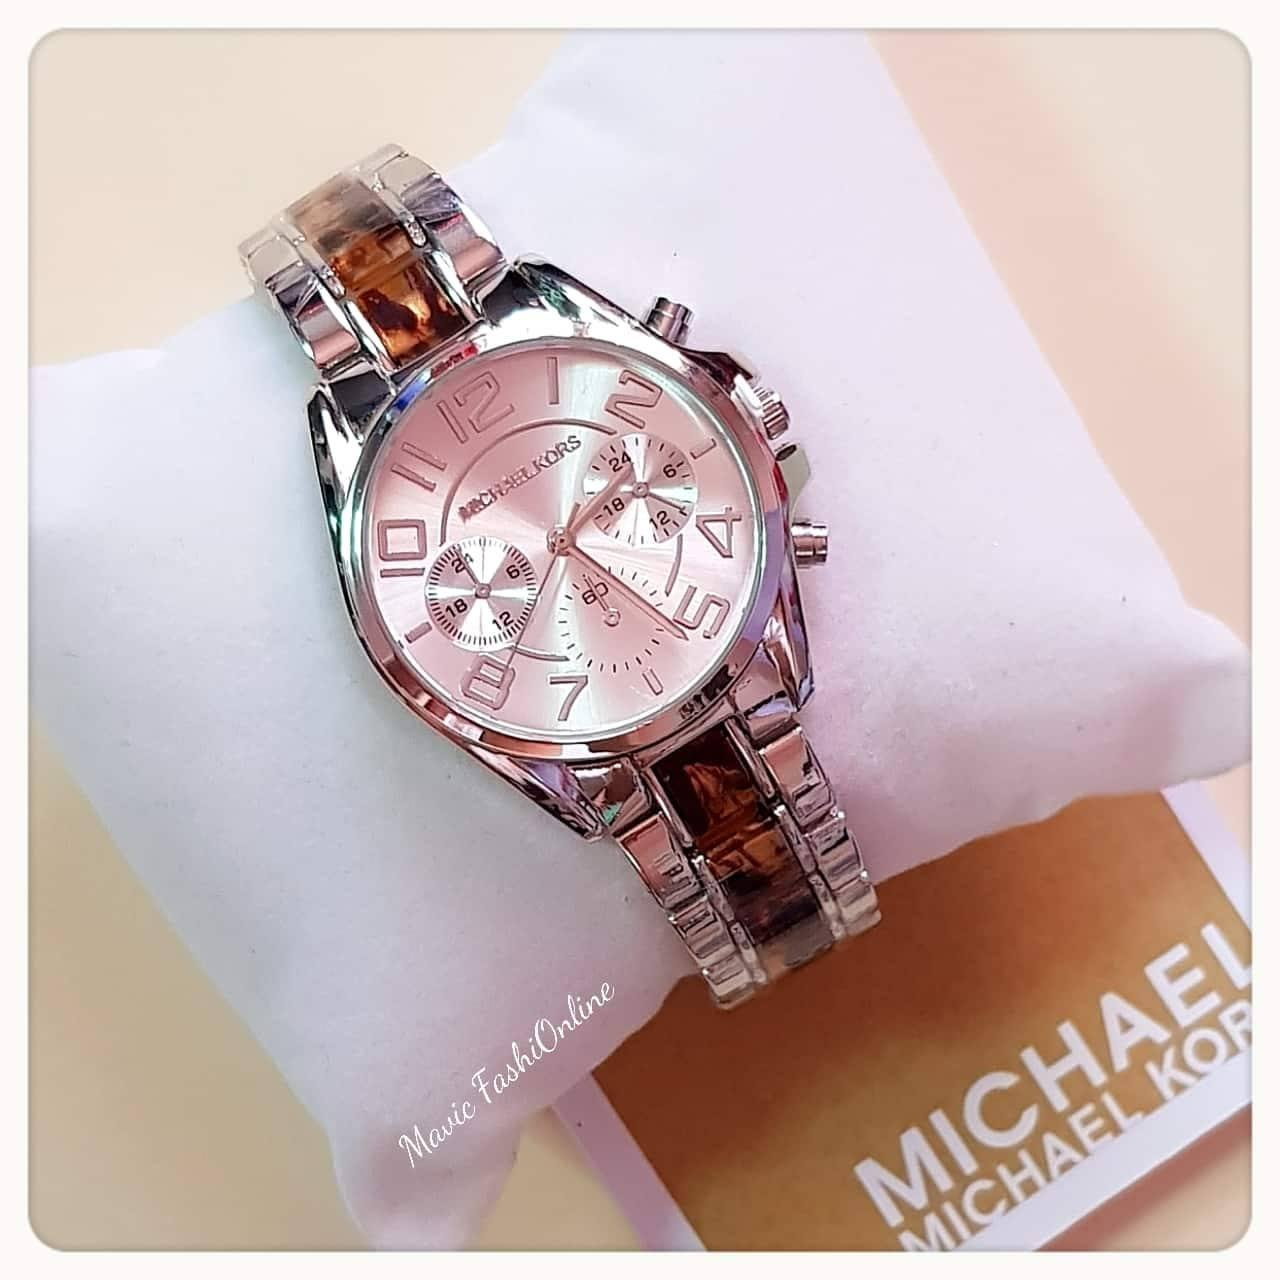 6b00a1f89c6 Michael Kors Philippines -Michael Kors Watches for sale - prices ...